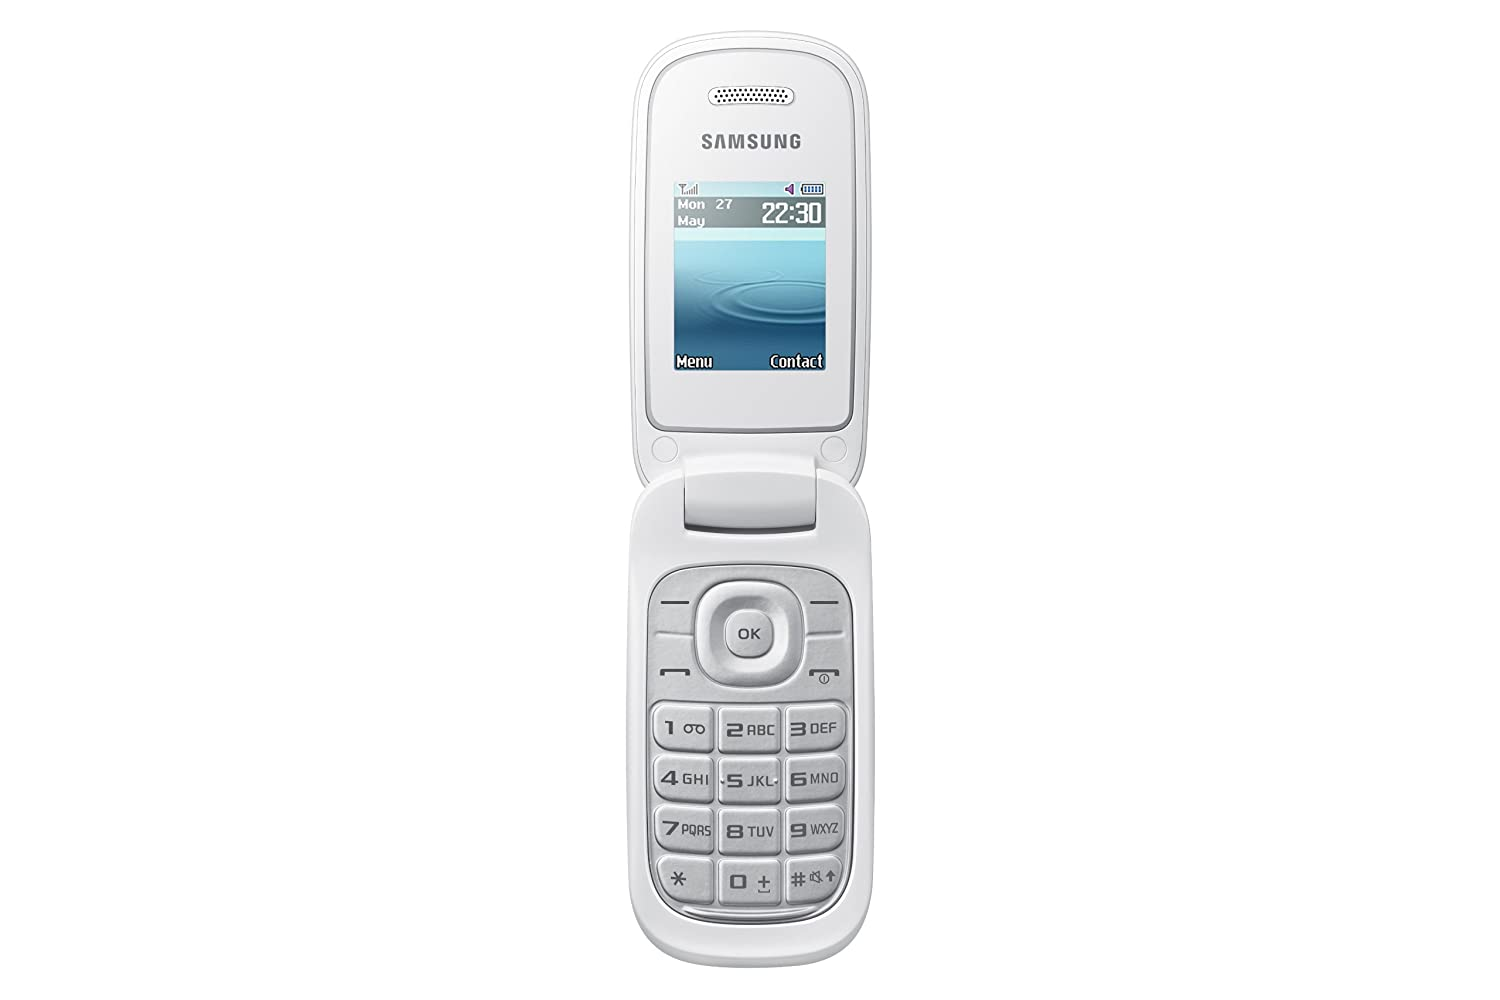 samsung e1270 sim flip mobile phone unlocked cheap basic cheapest white ebay. Black Bedroom Furniture Sets. Home Design Ideas